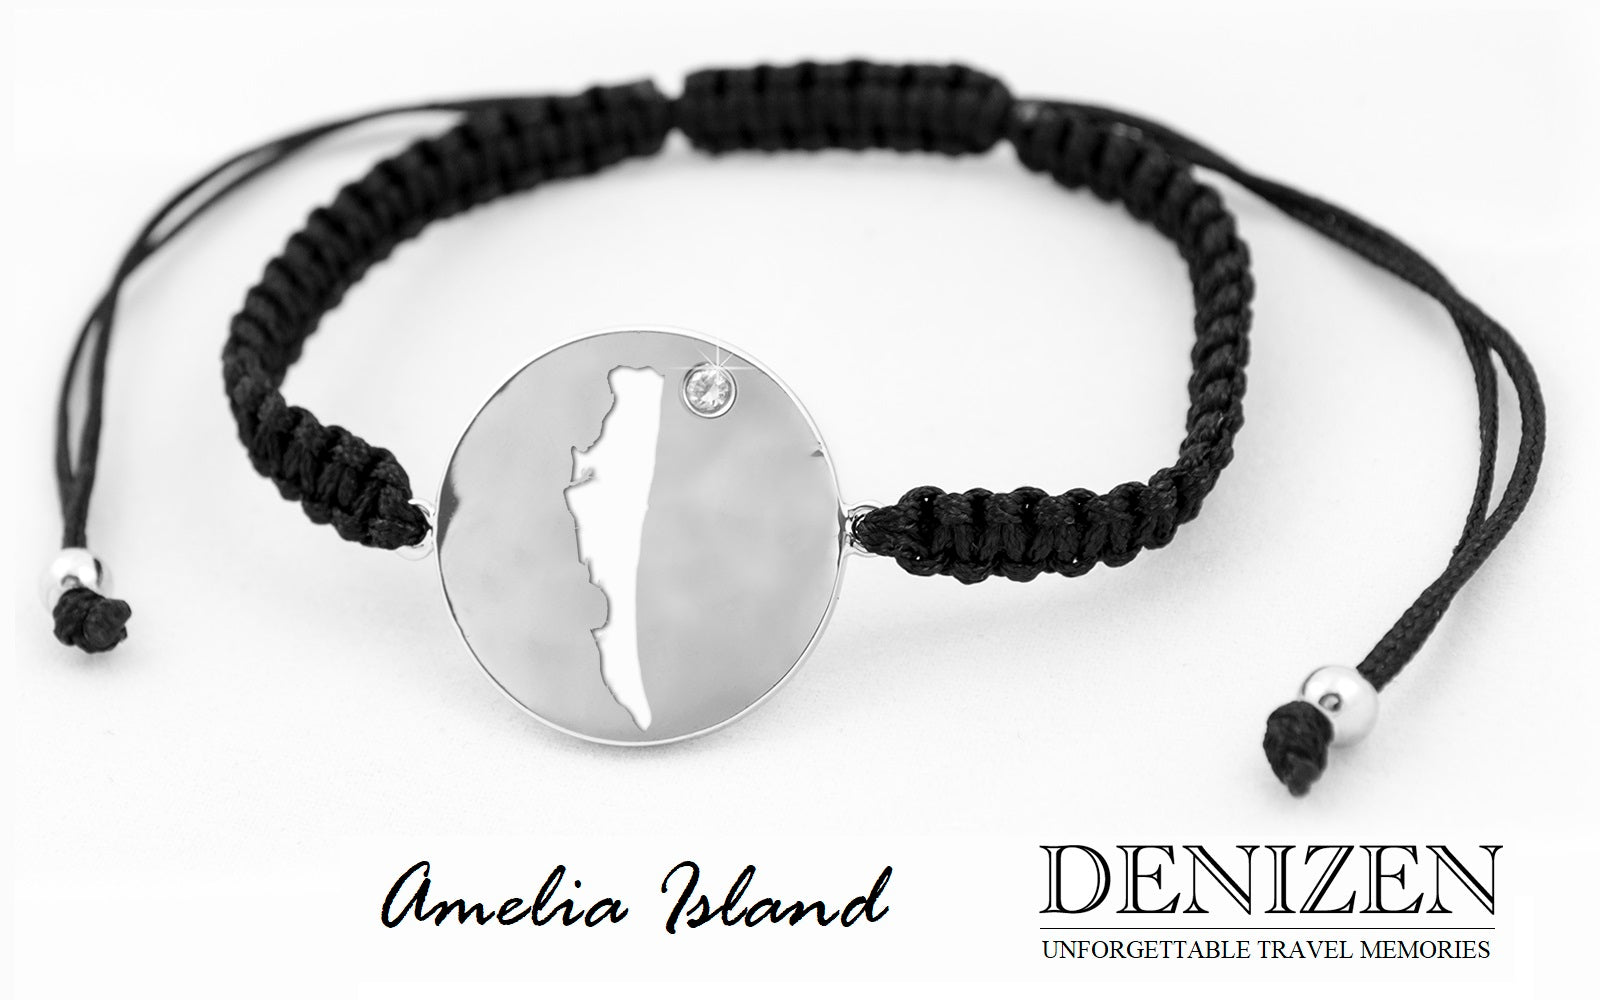 DENIZEN jewelry - Bracelet of Amelia Island